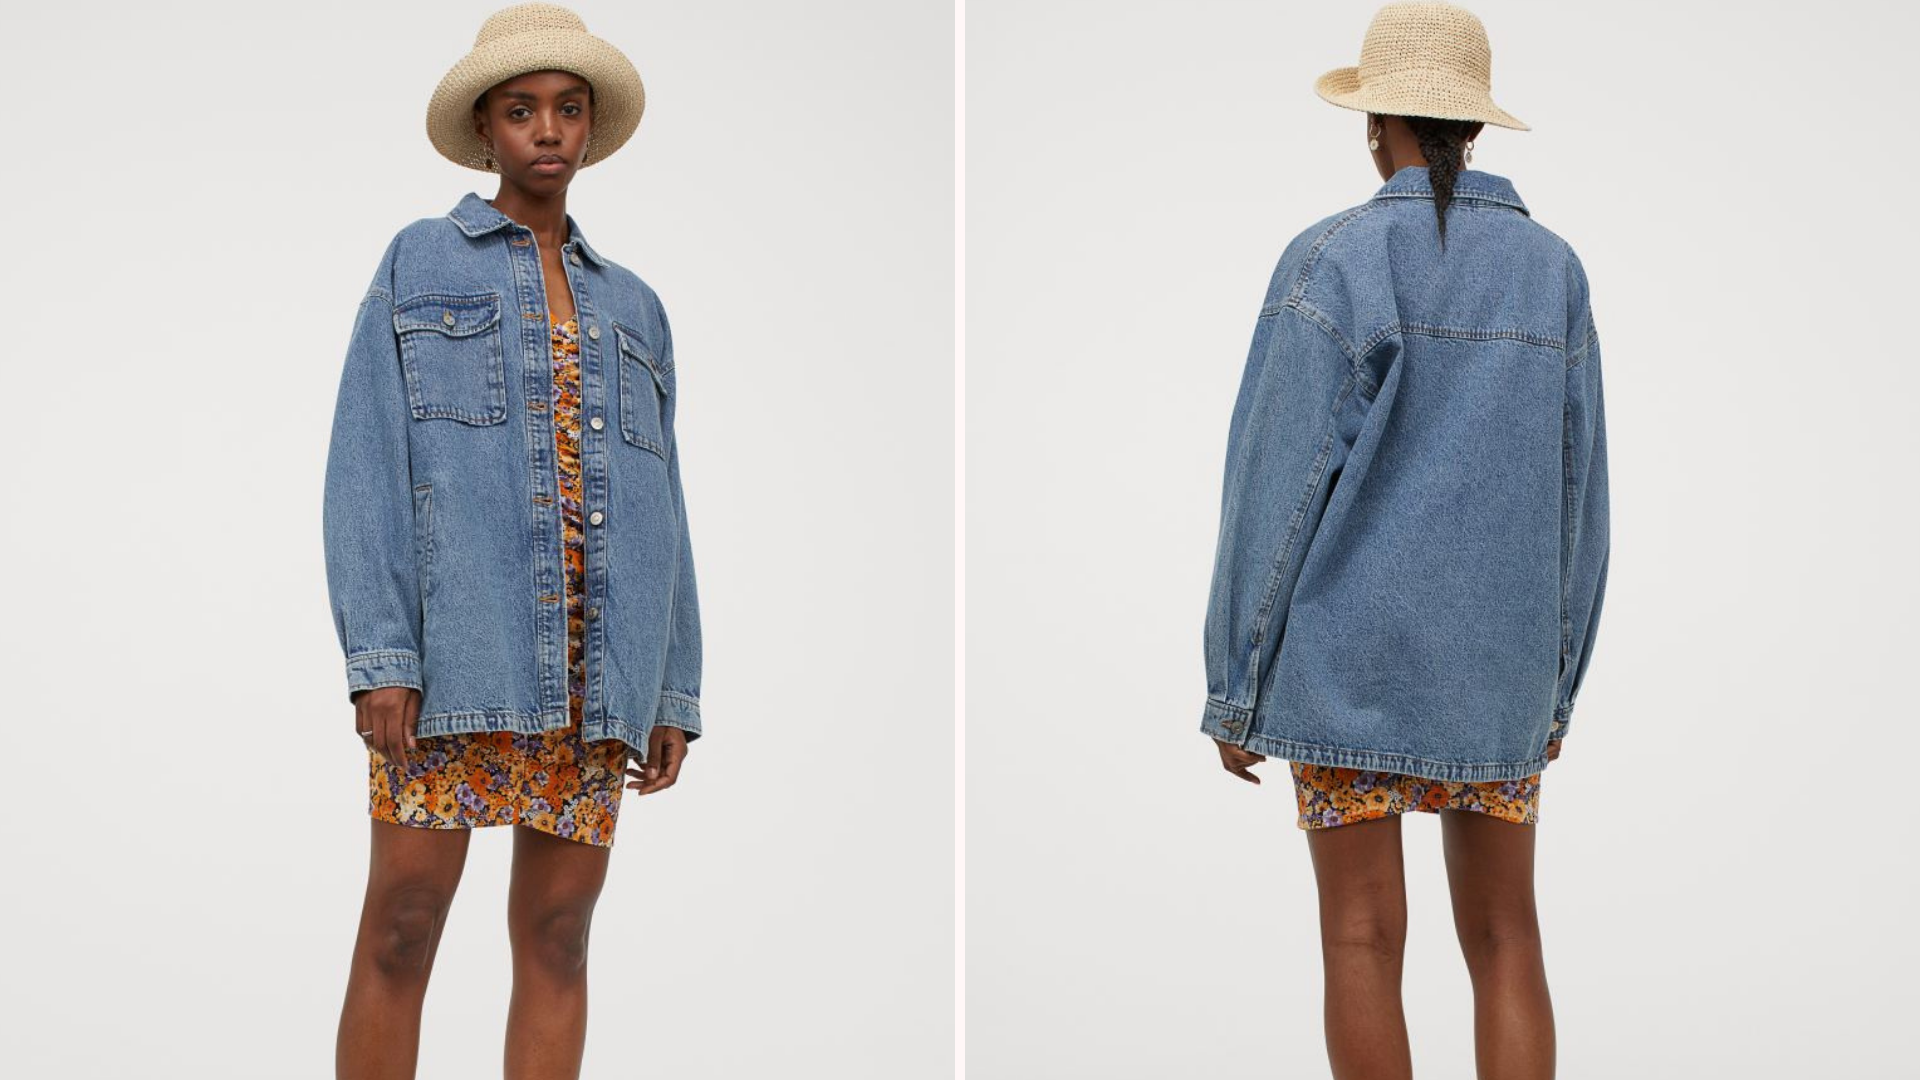 Black woman wearing hat with denim shacket and sundress